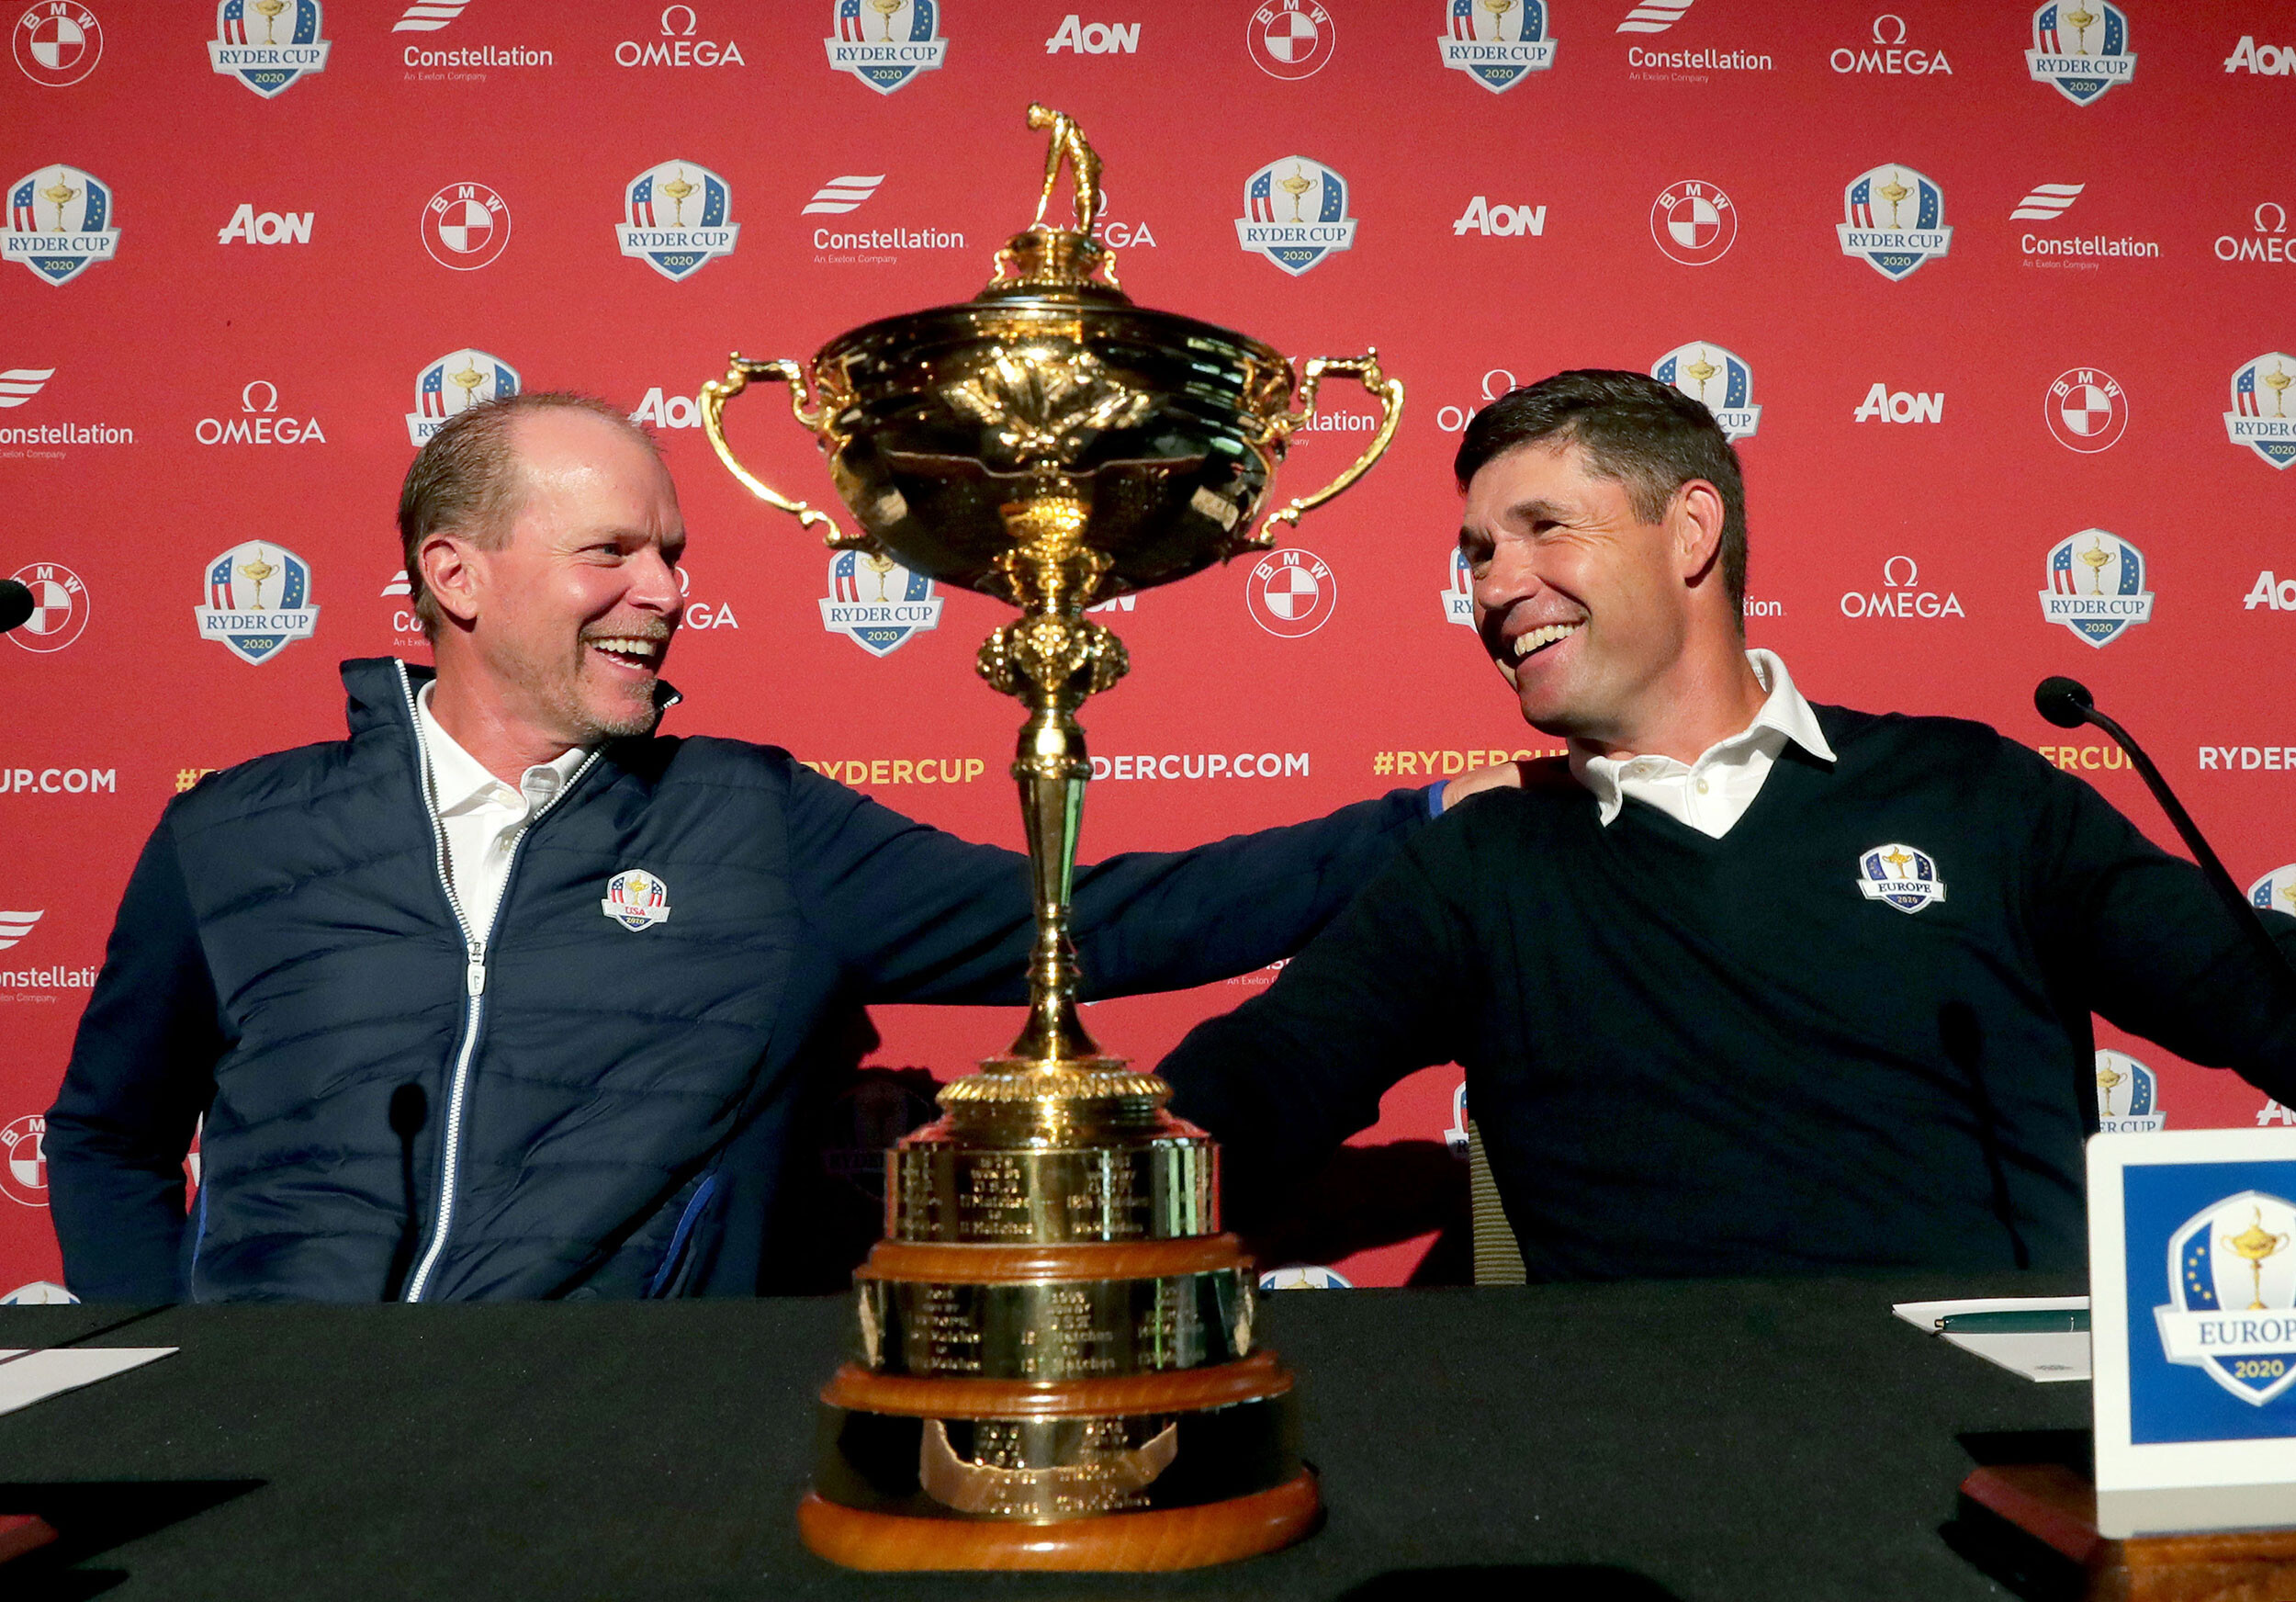 Ryder Cup: How to watch golf's US vs. Europe showdown